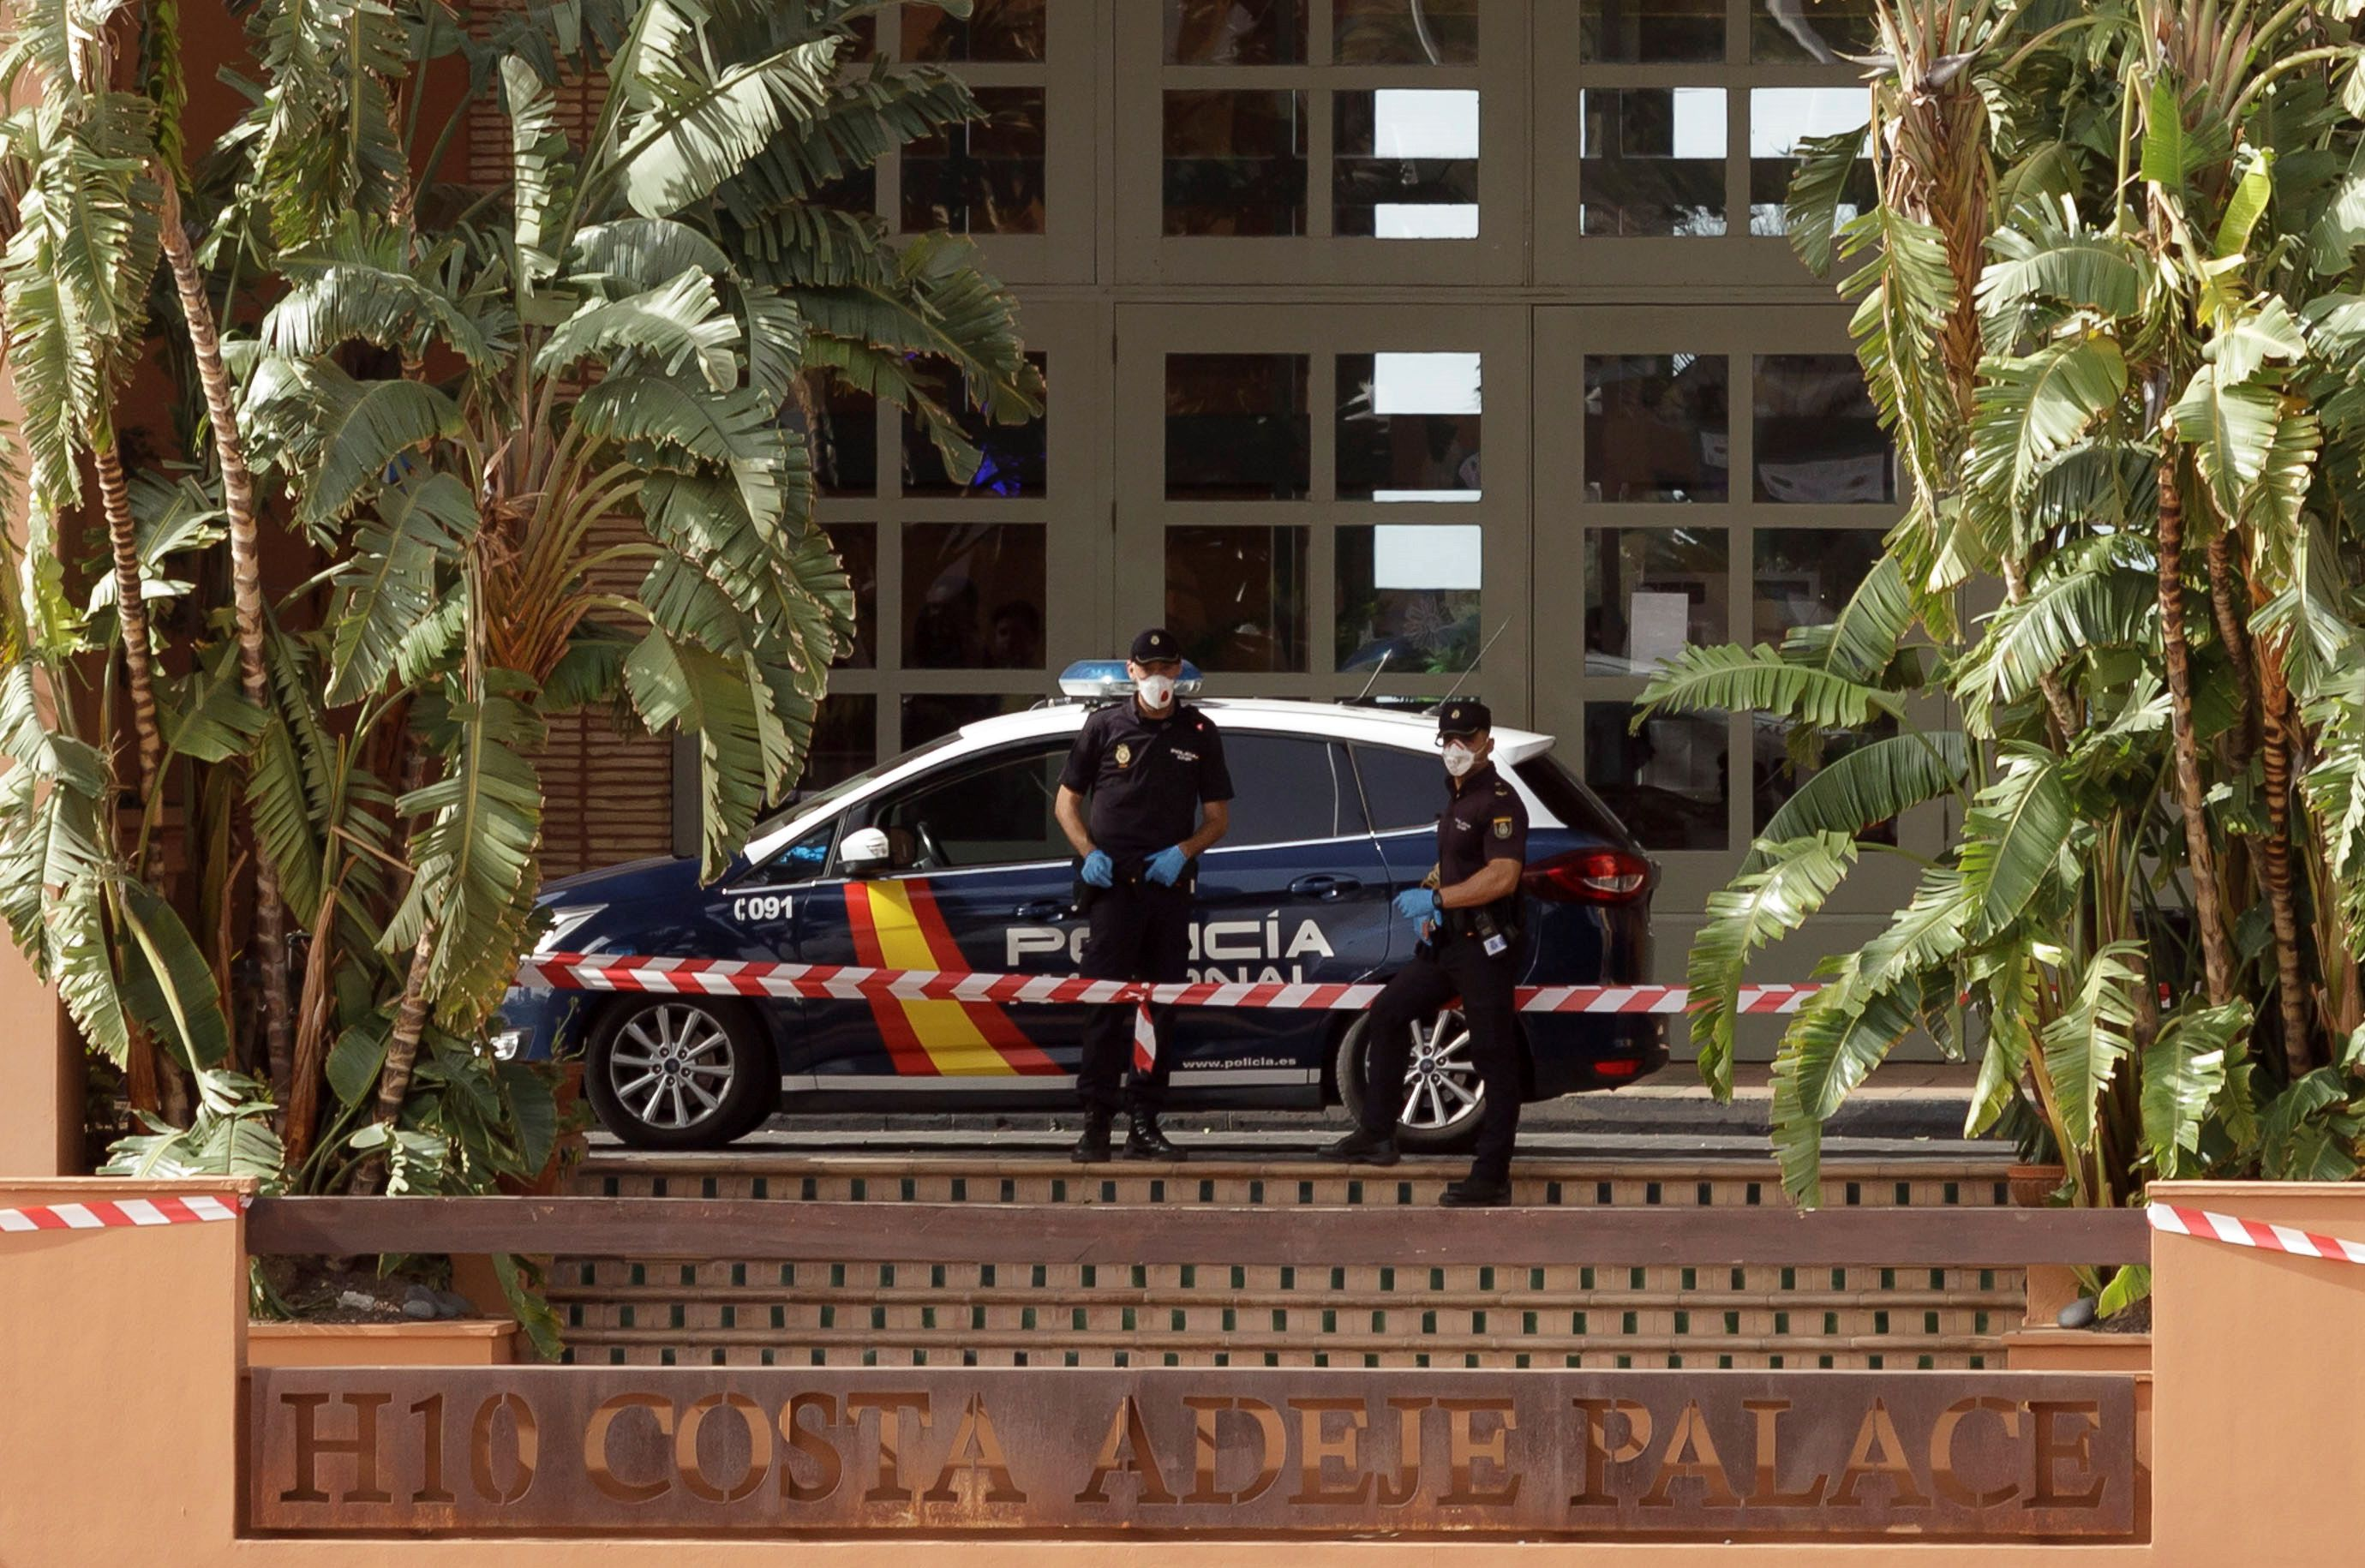 Policemen stand guard outside a hotel in Tenerife that was placed on lockdown after a guest tested positive for Coronavirus on February 25.